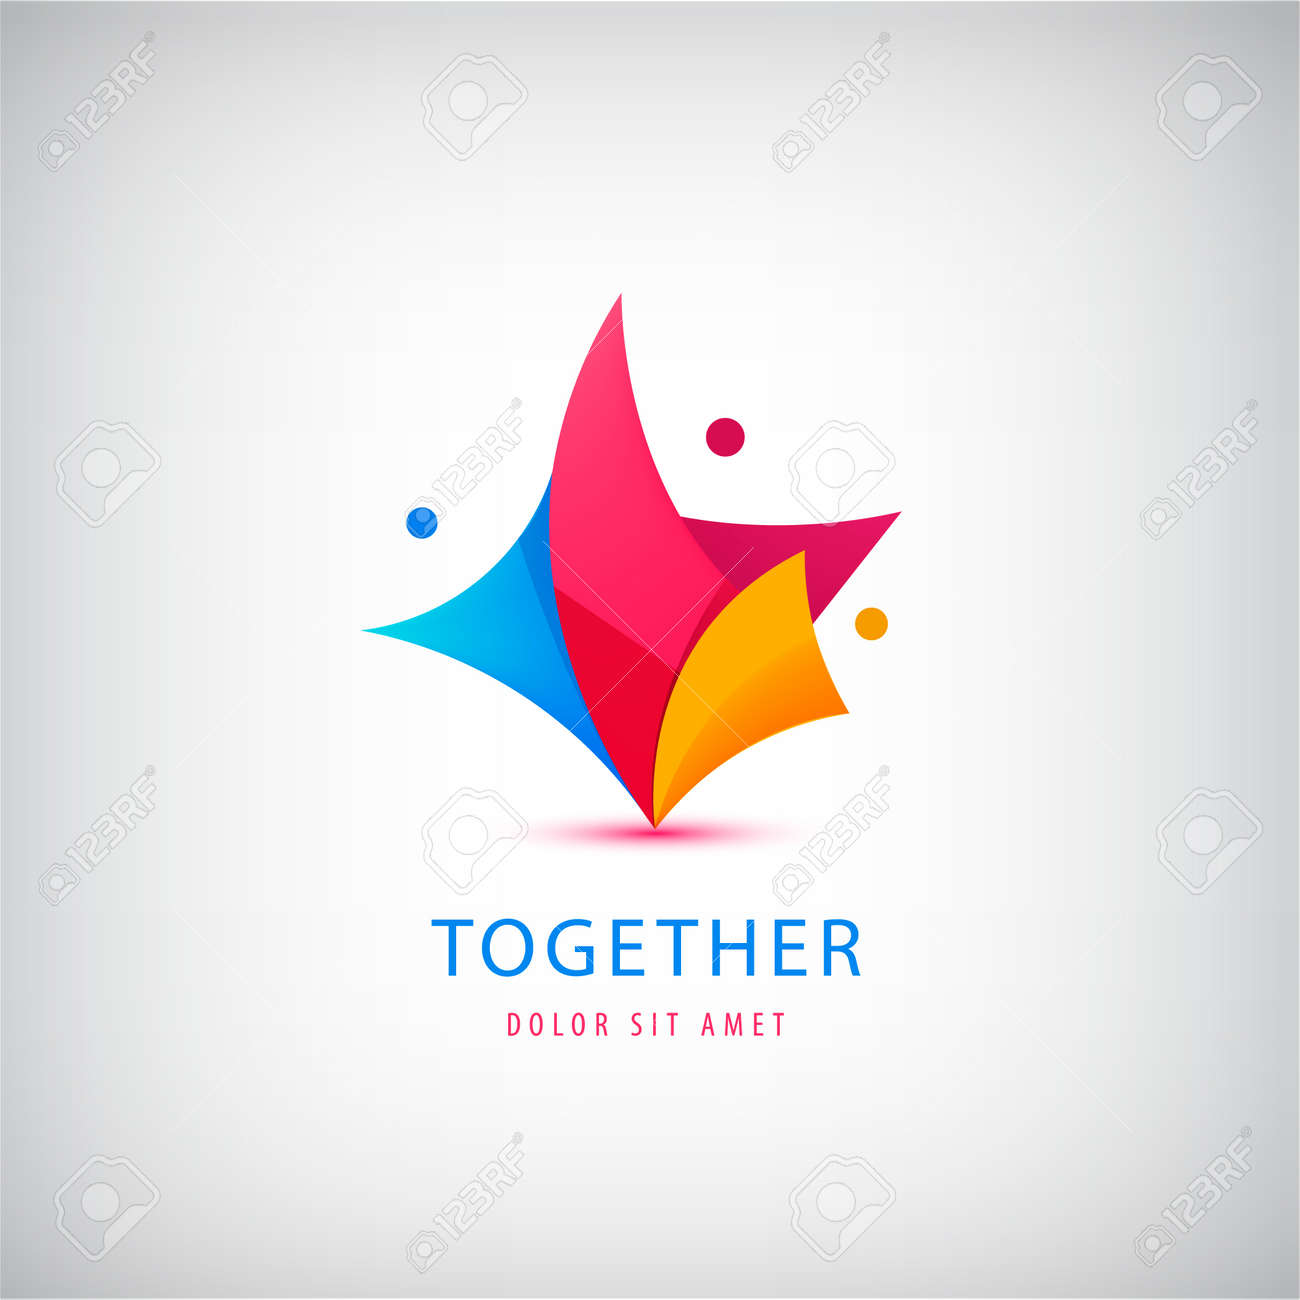 Vector3 person , teamwork. Love, support, three people together icon, concept. Hug and embrace, close friends together, child adoption, support, parent, mother, father, together - 171516334